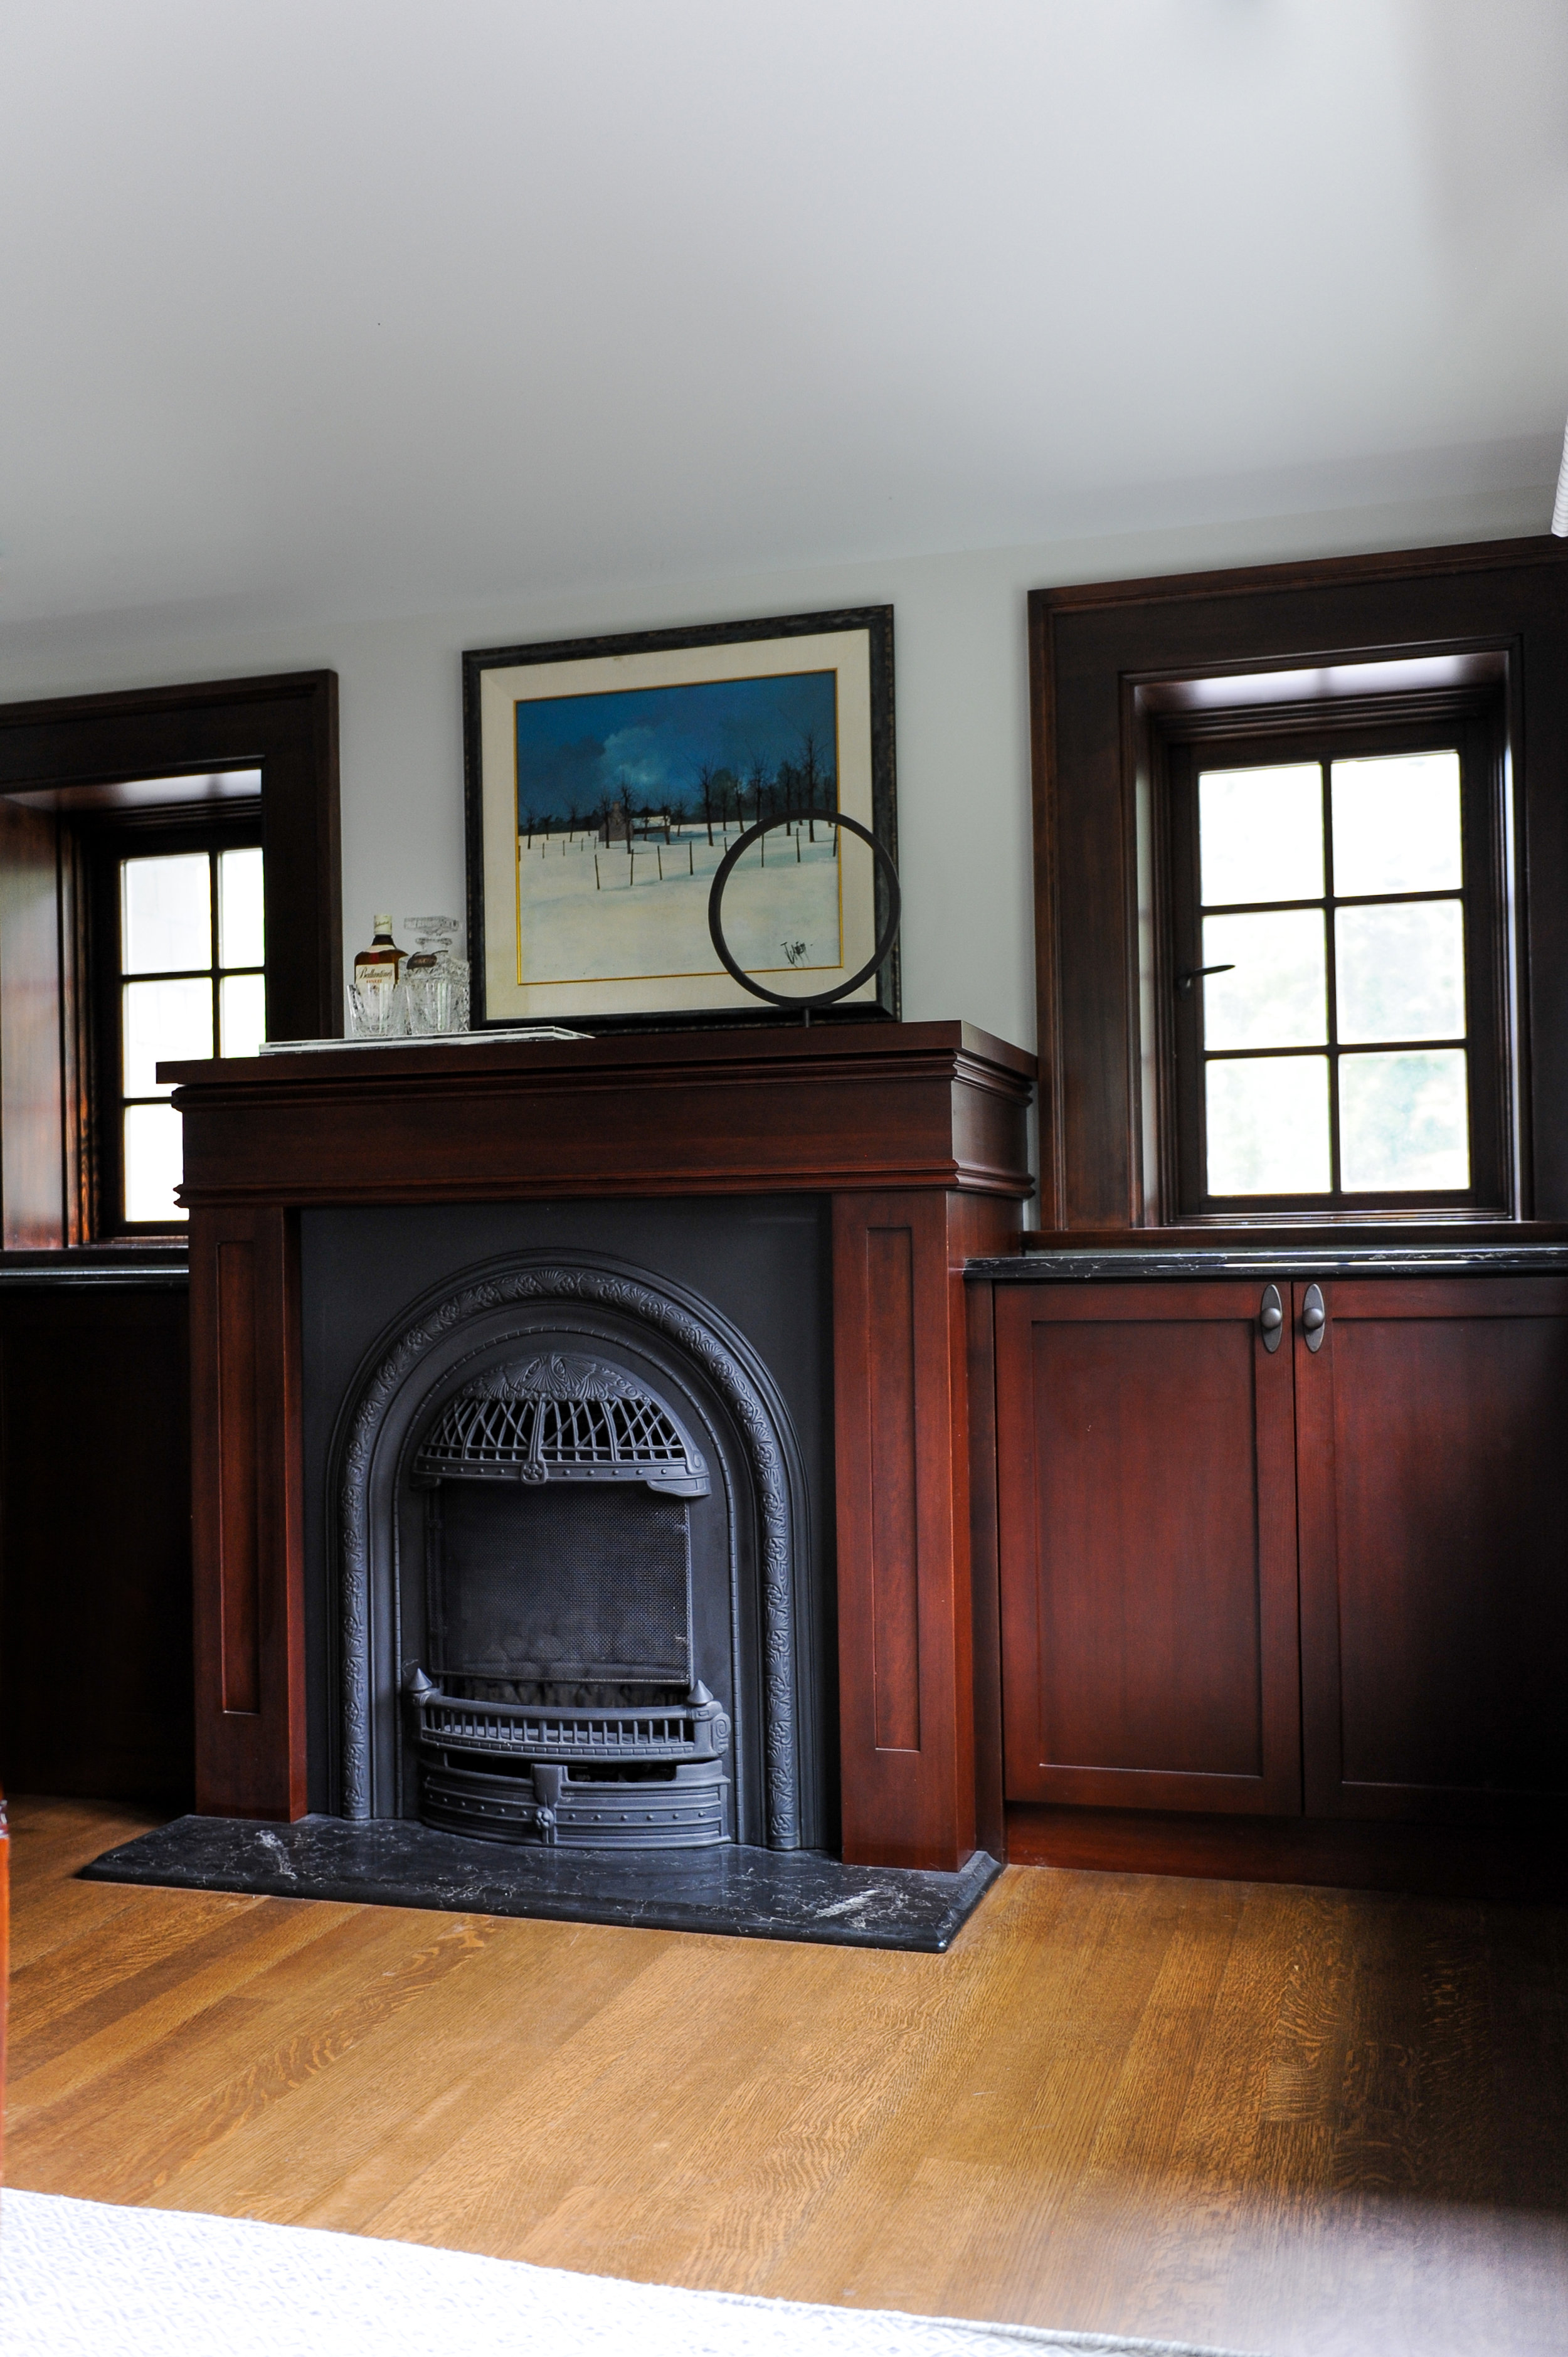 A dark iron fireplace sits inside of a dark wooden mantle and is flanked by dark wooden cabinets on either side. Above each cabinet is a six-panel window. A painting of a snowy scene hangs above the mantlepiece.